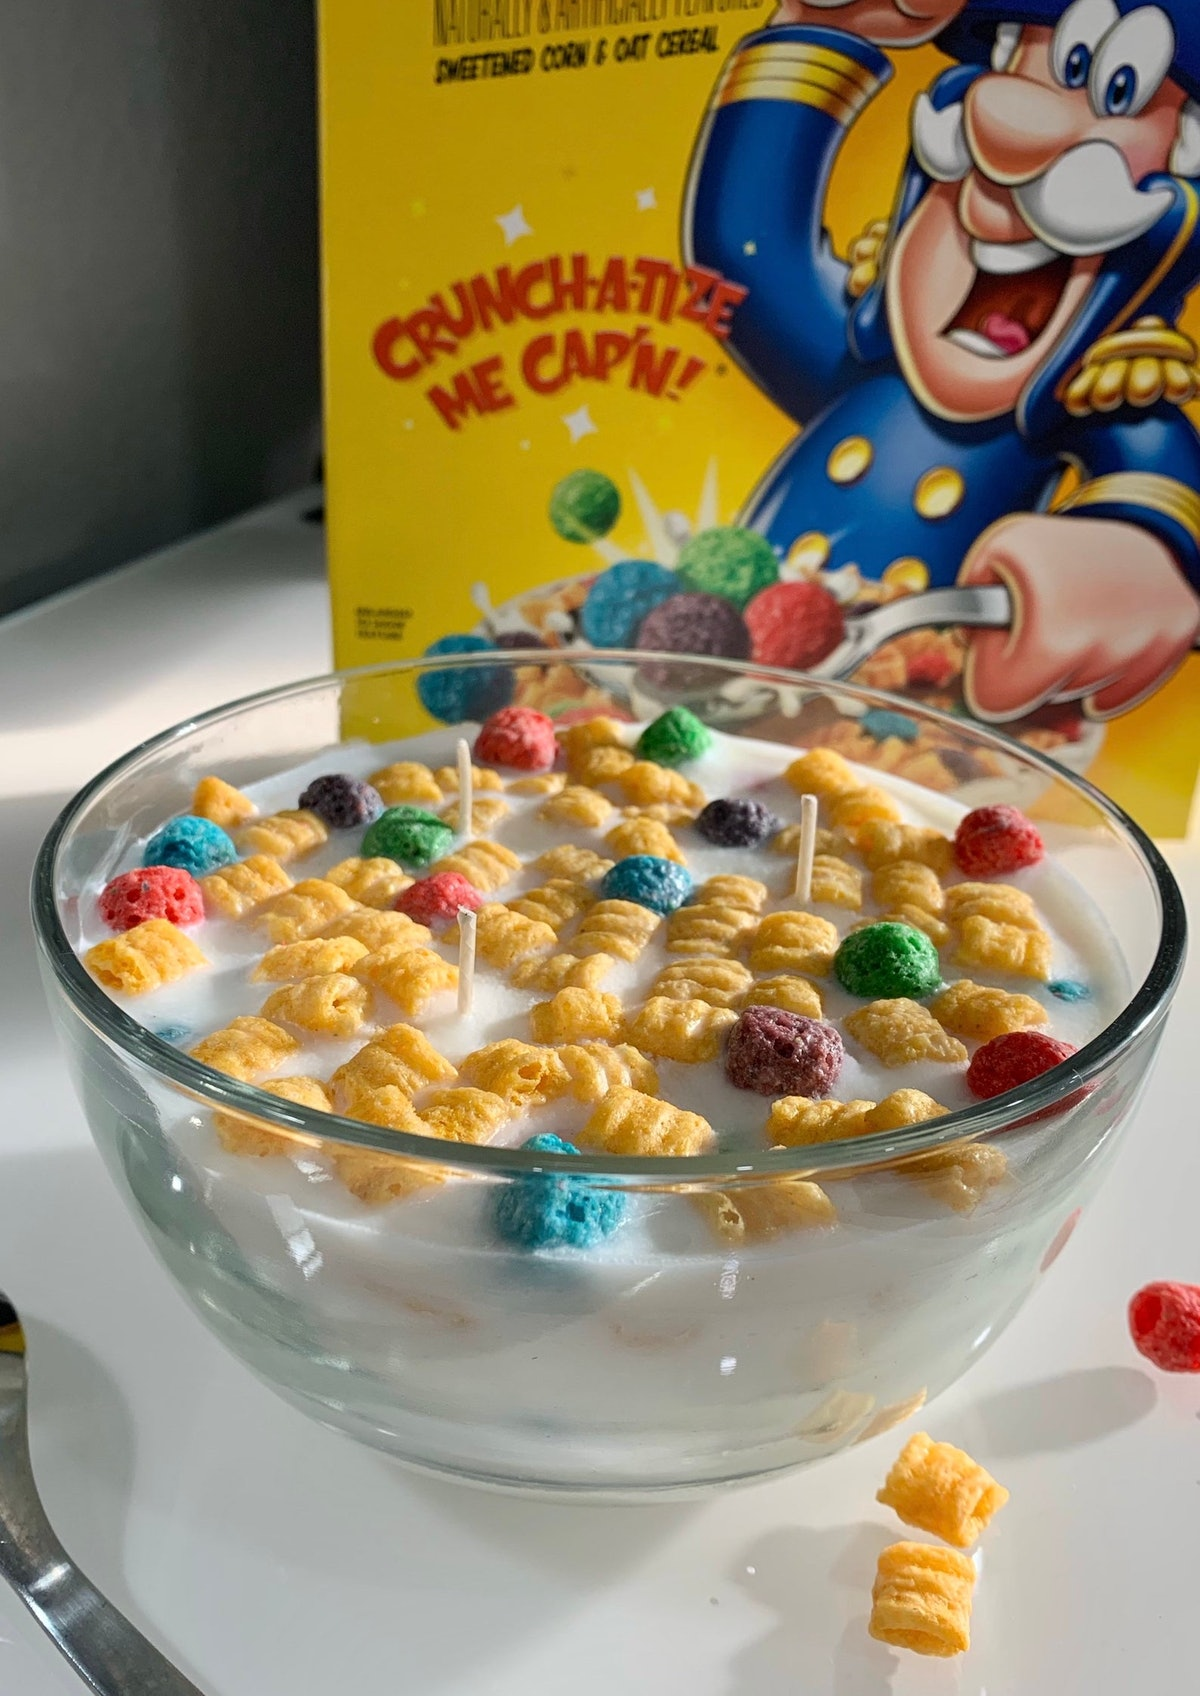 BVG Saturday Morning Cartoons Candle Cap'n Crunch Cereal Edition